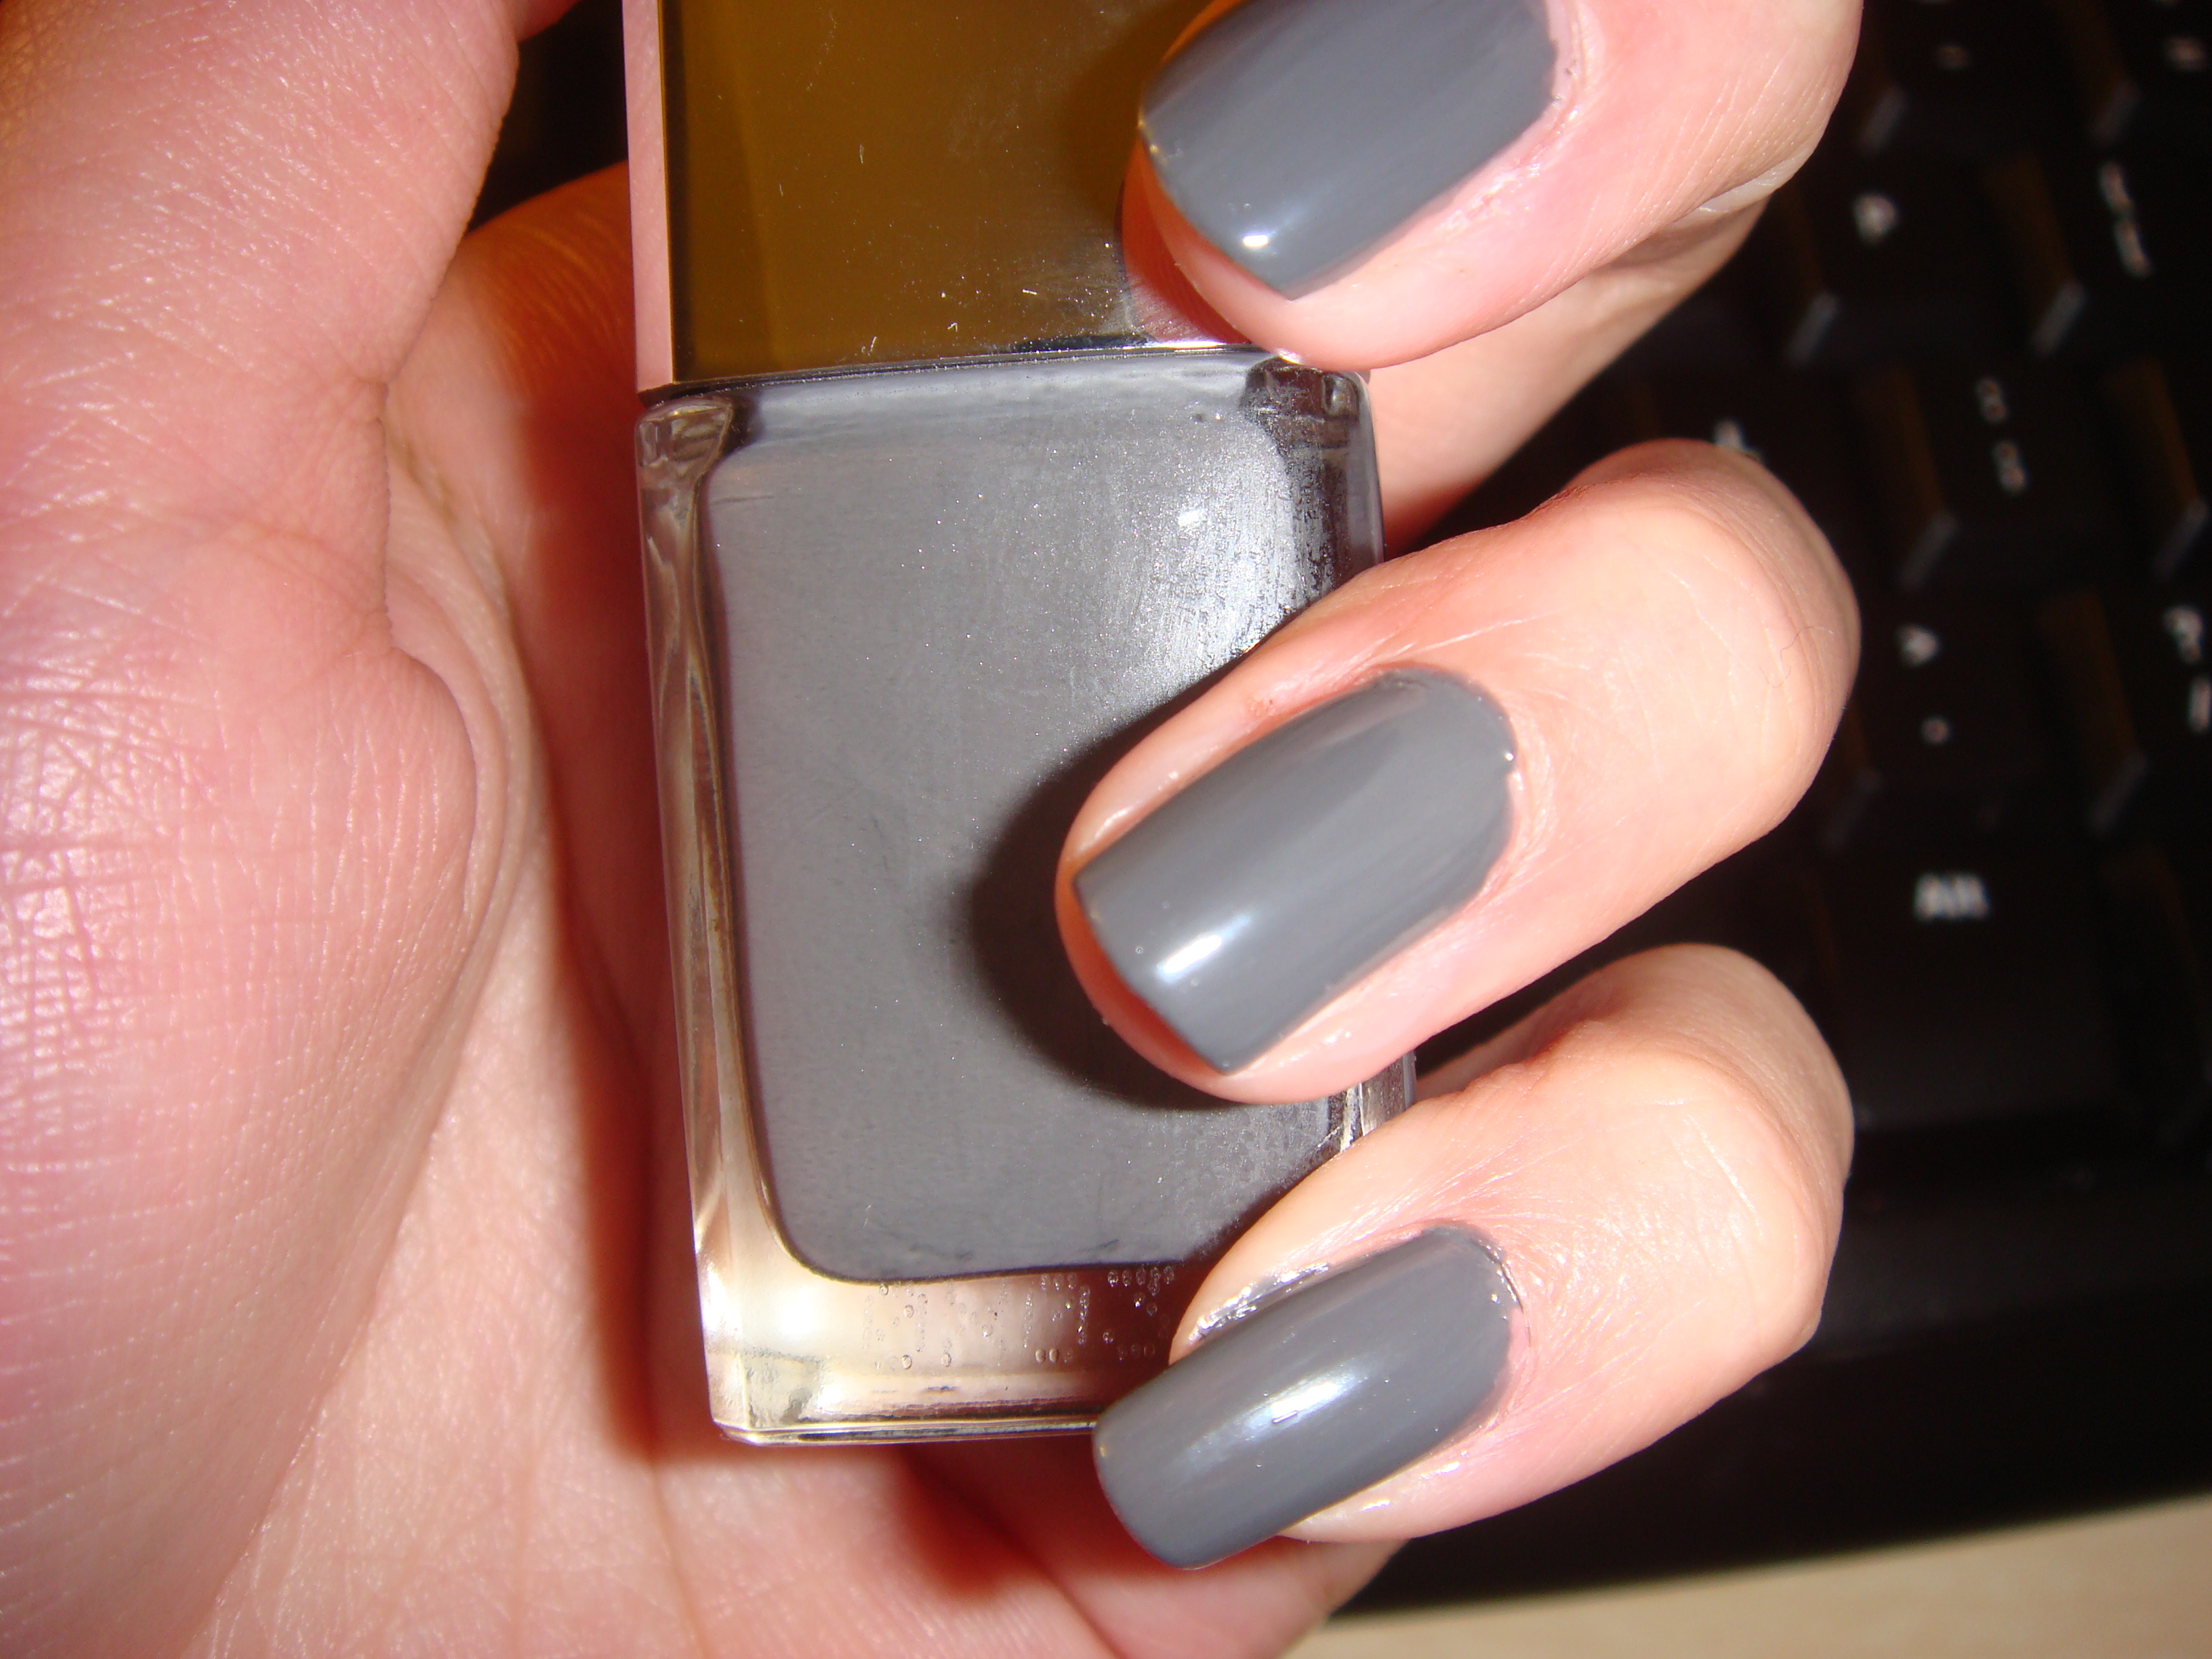 Gris Montaigne Christian Dior swatch: dior vernis in 707 gris montaigne | *maddy loves